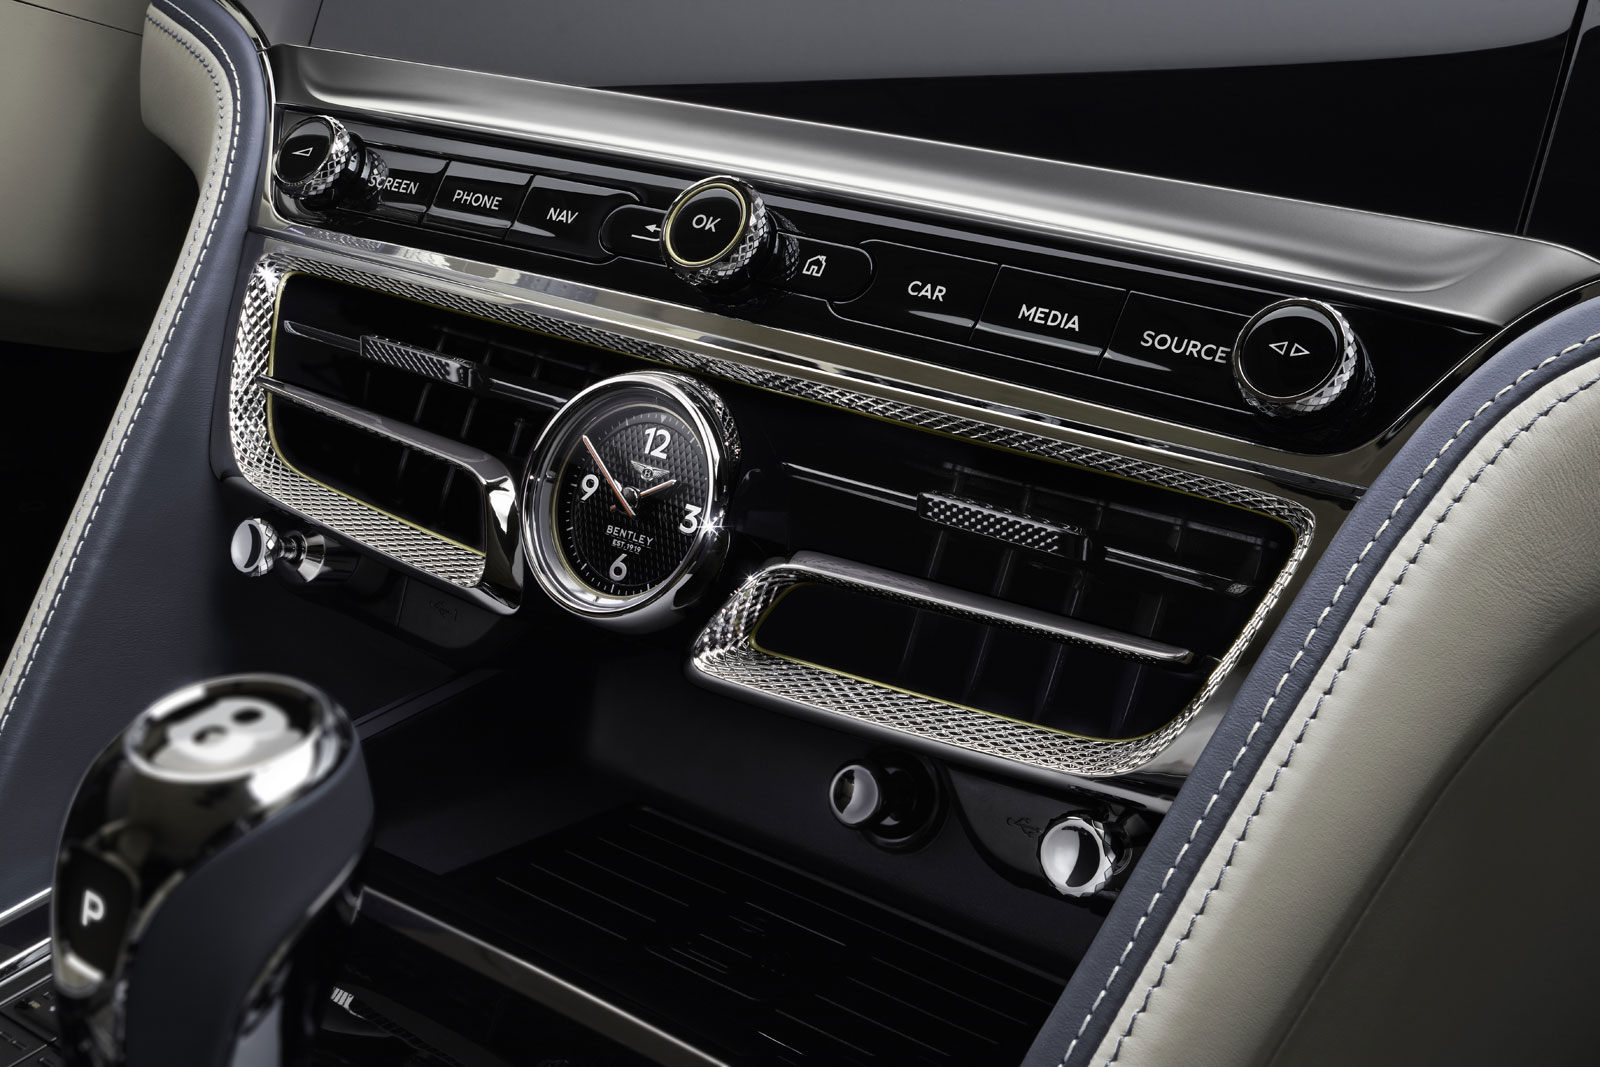 New-Bentley-Flying-Spur-Interior-05.jpg